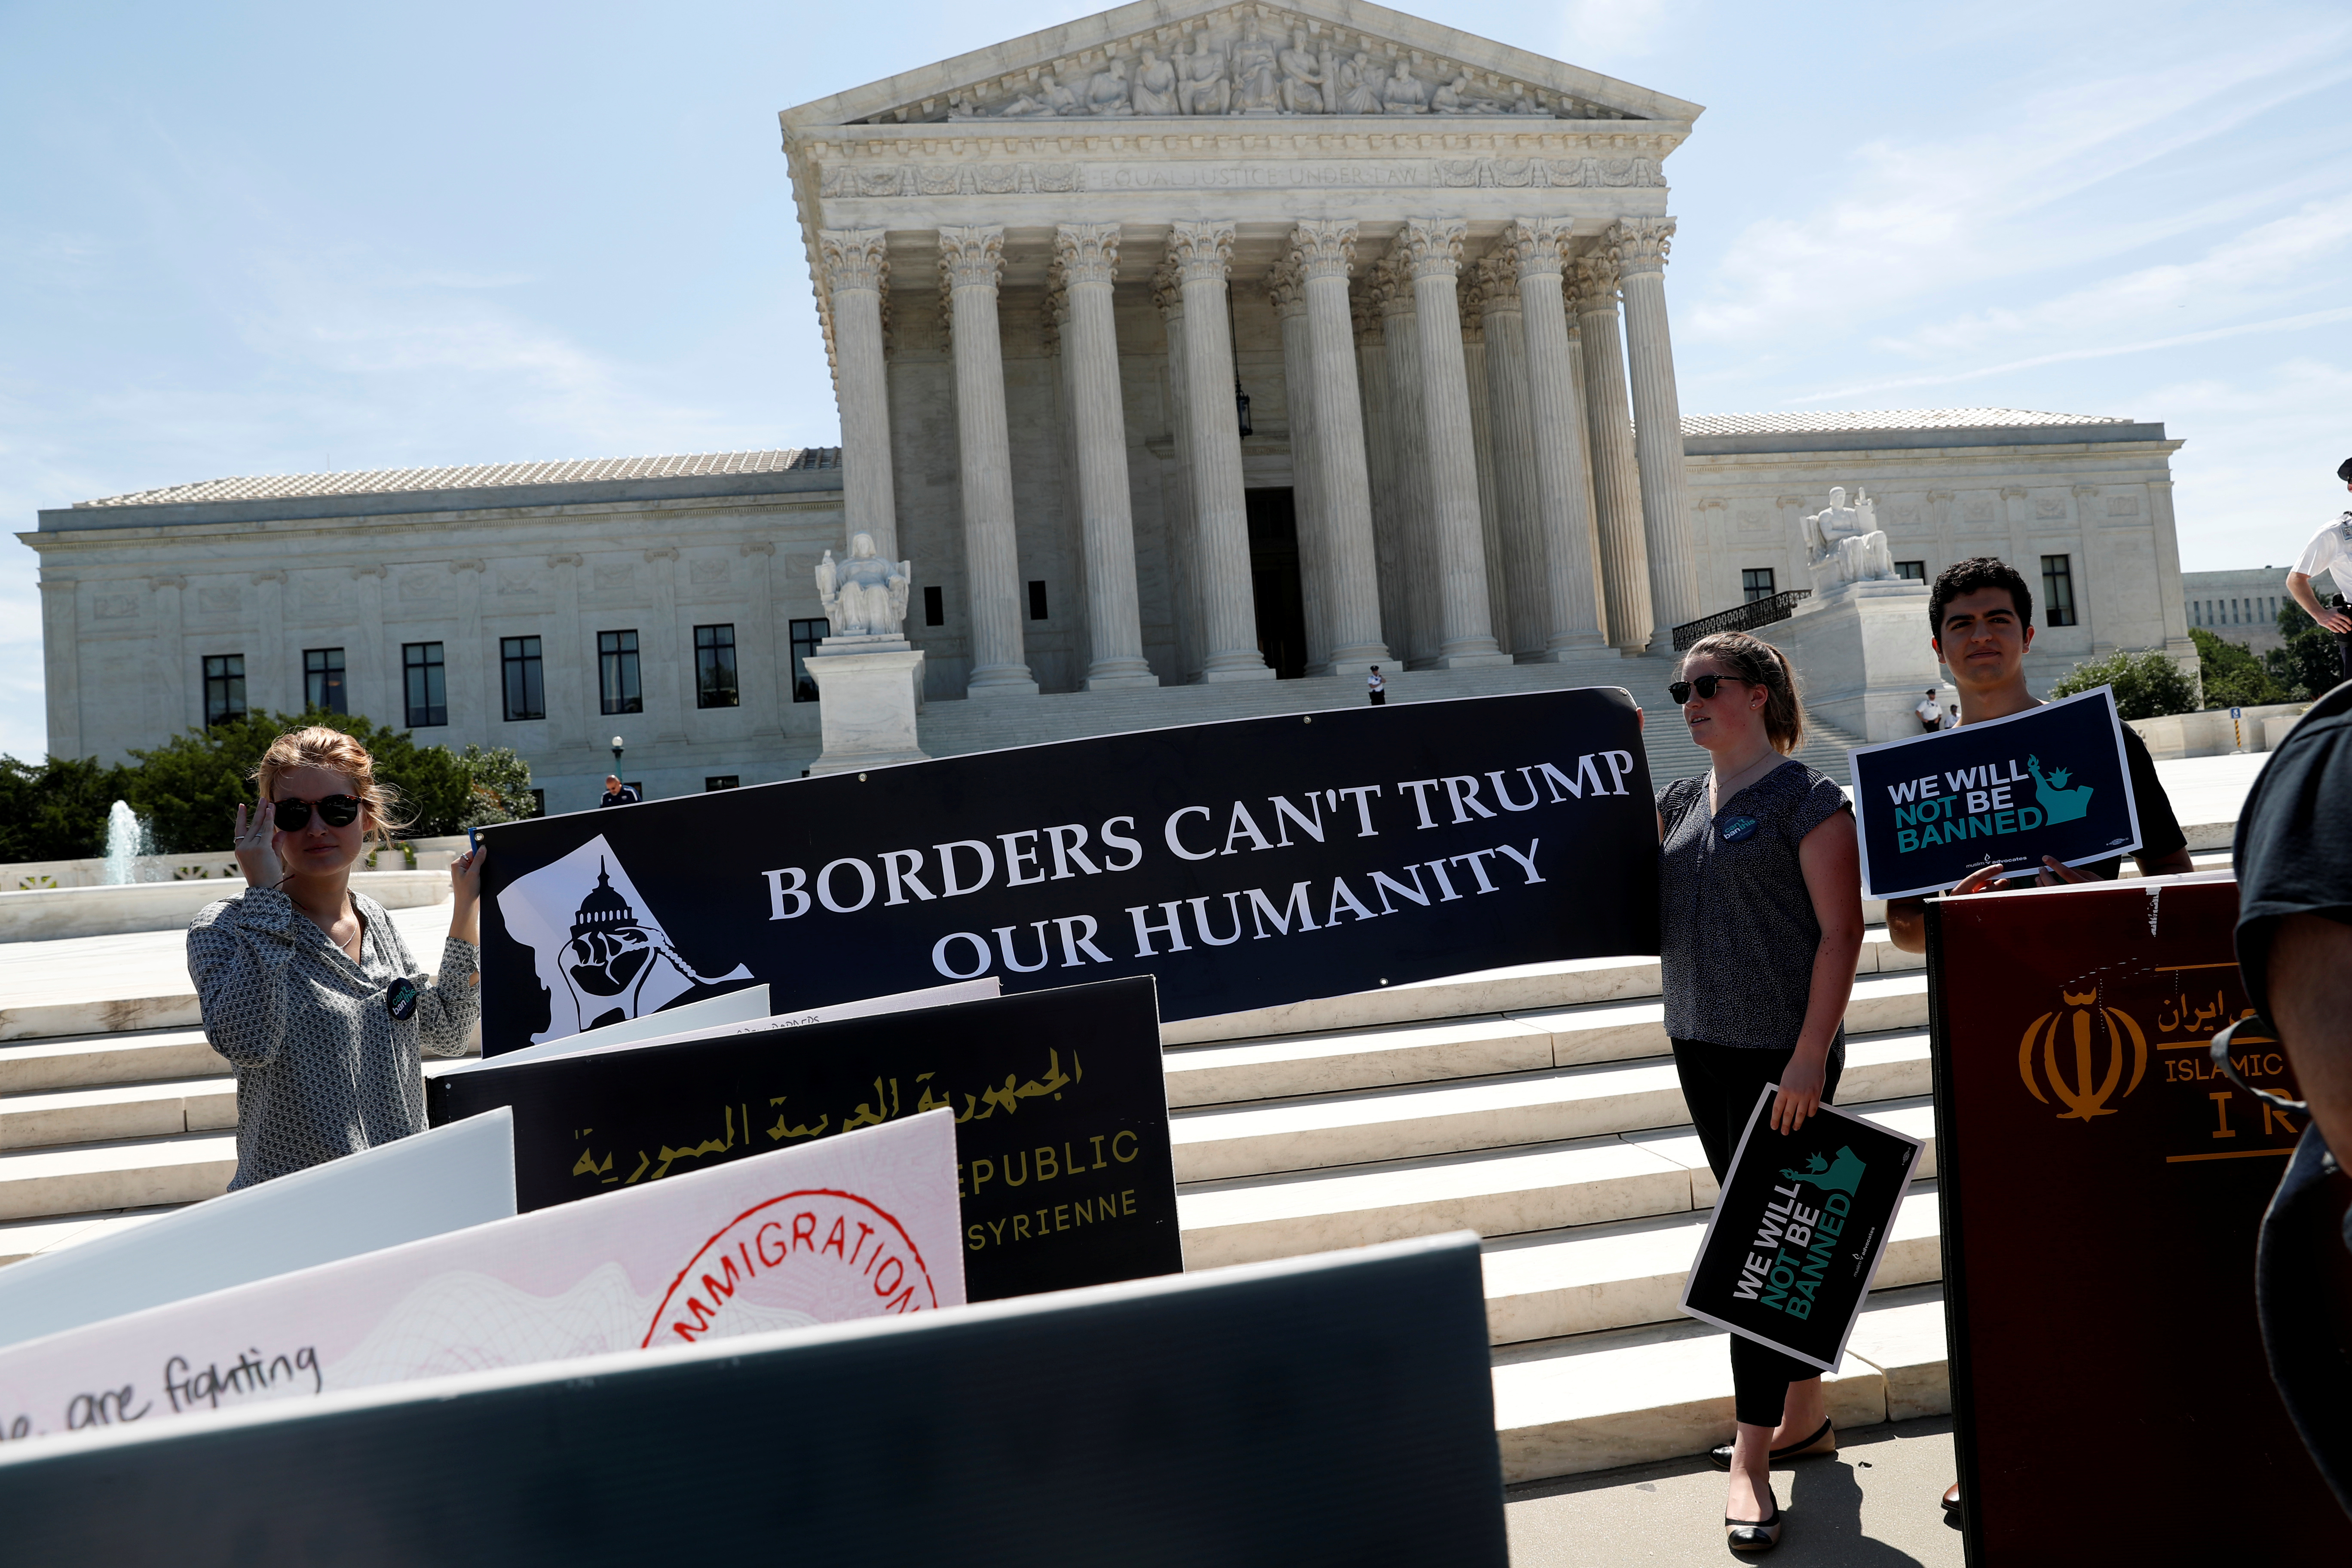 Immigration rights proponents demonstrate outside the Supreme Court in Washington. June 26, 2018. REUTERS/Leah Millis